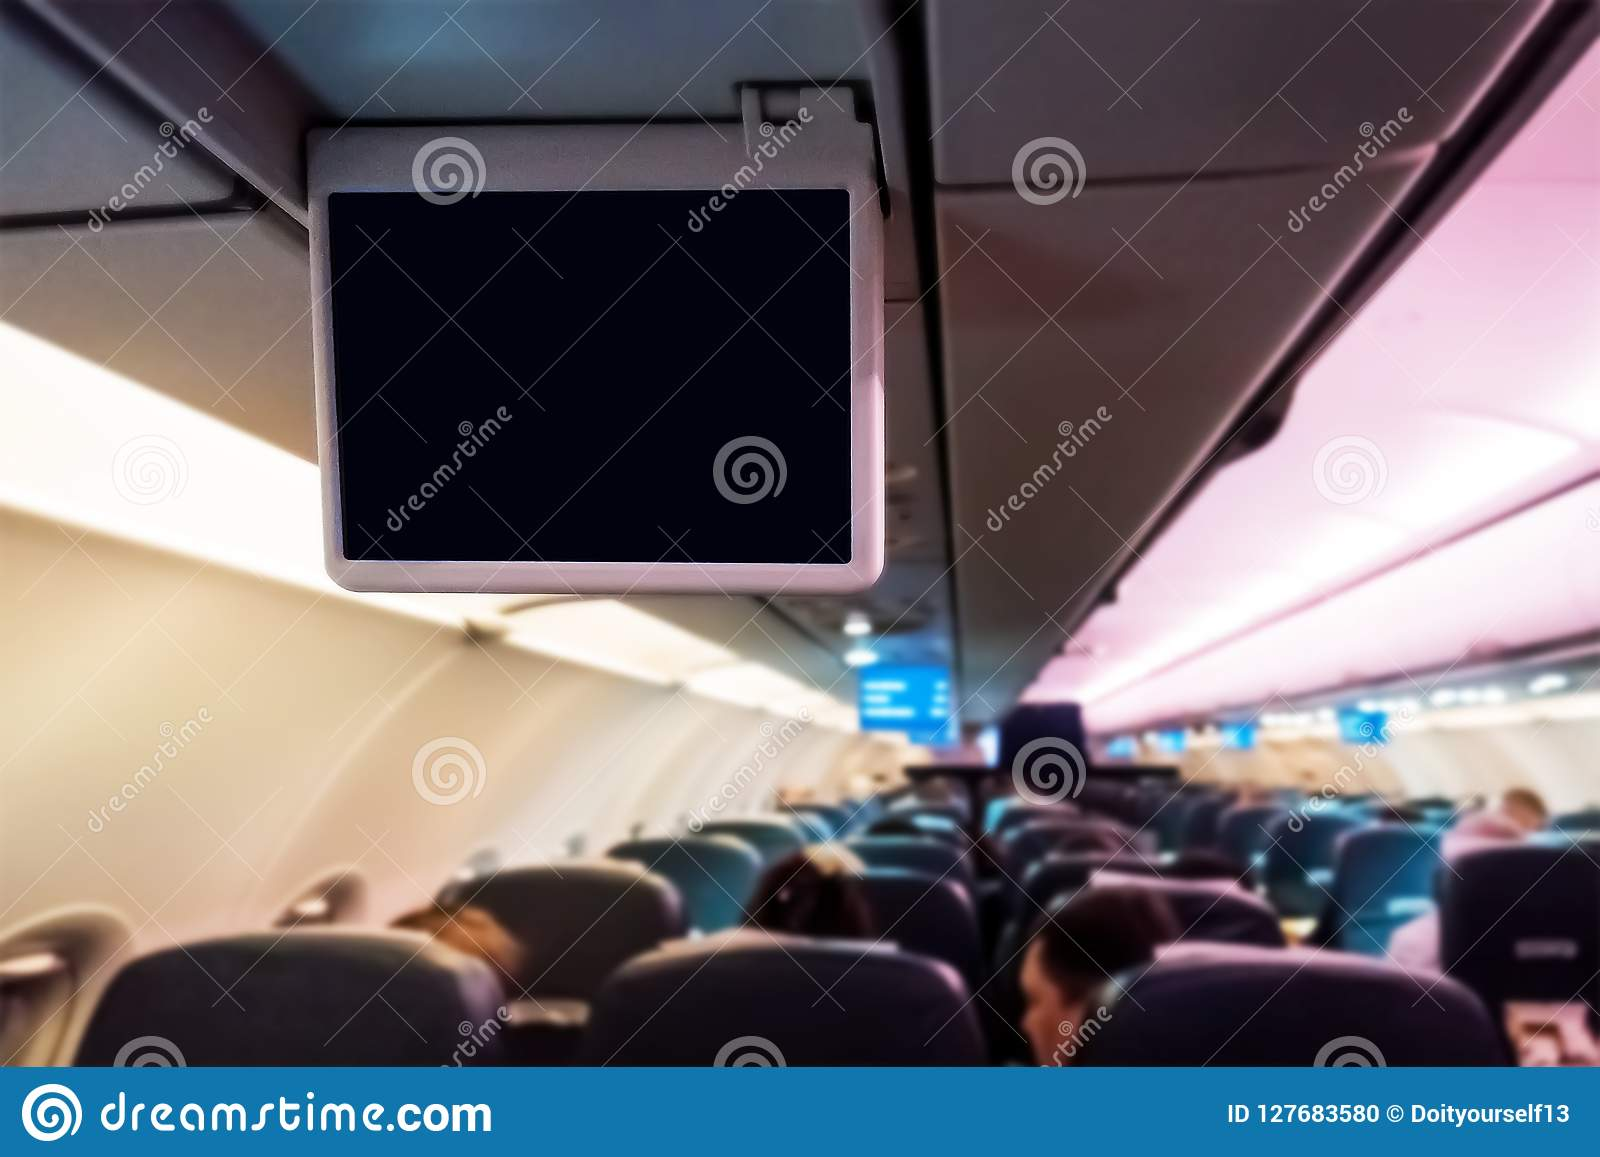 Interior of passenger airplane and blank entertainment screens